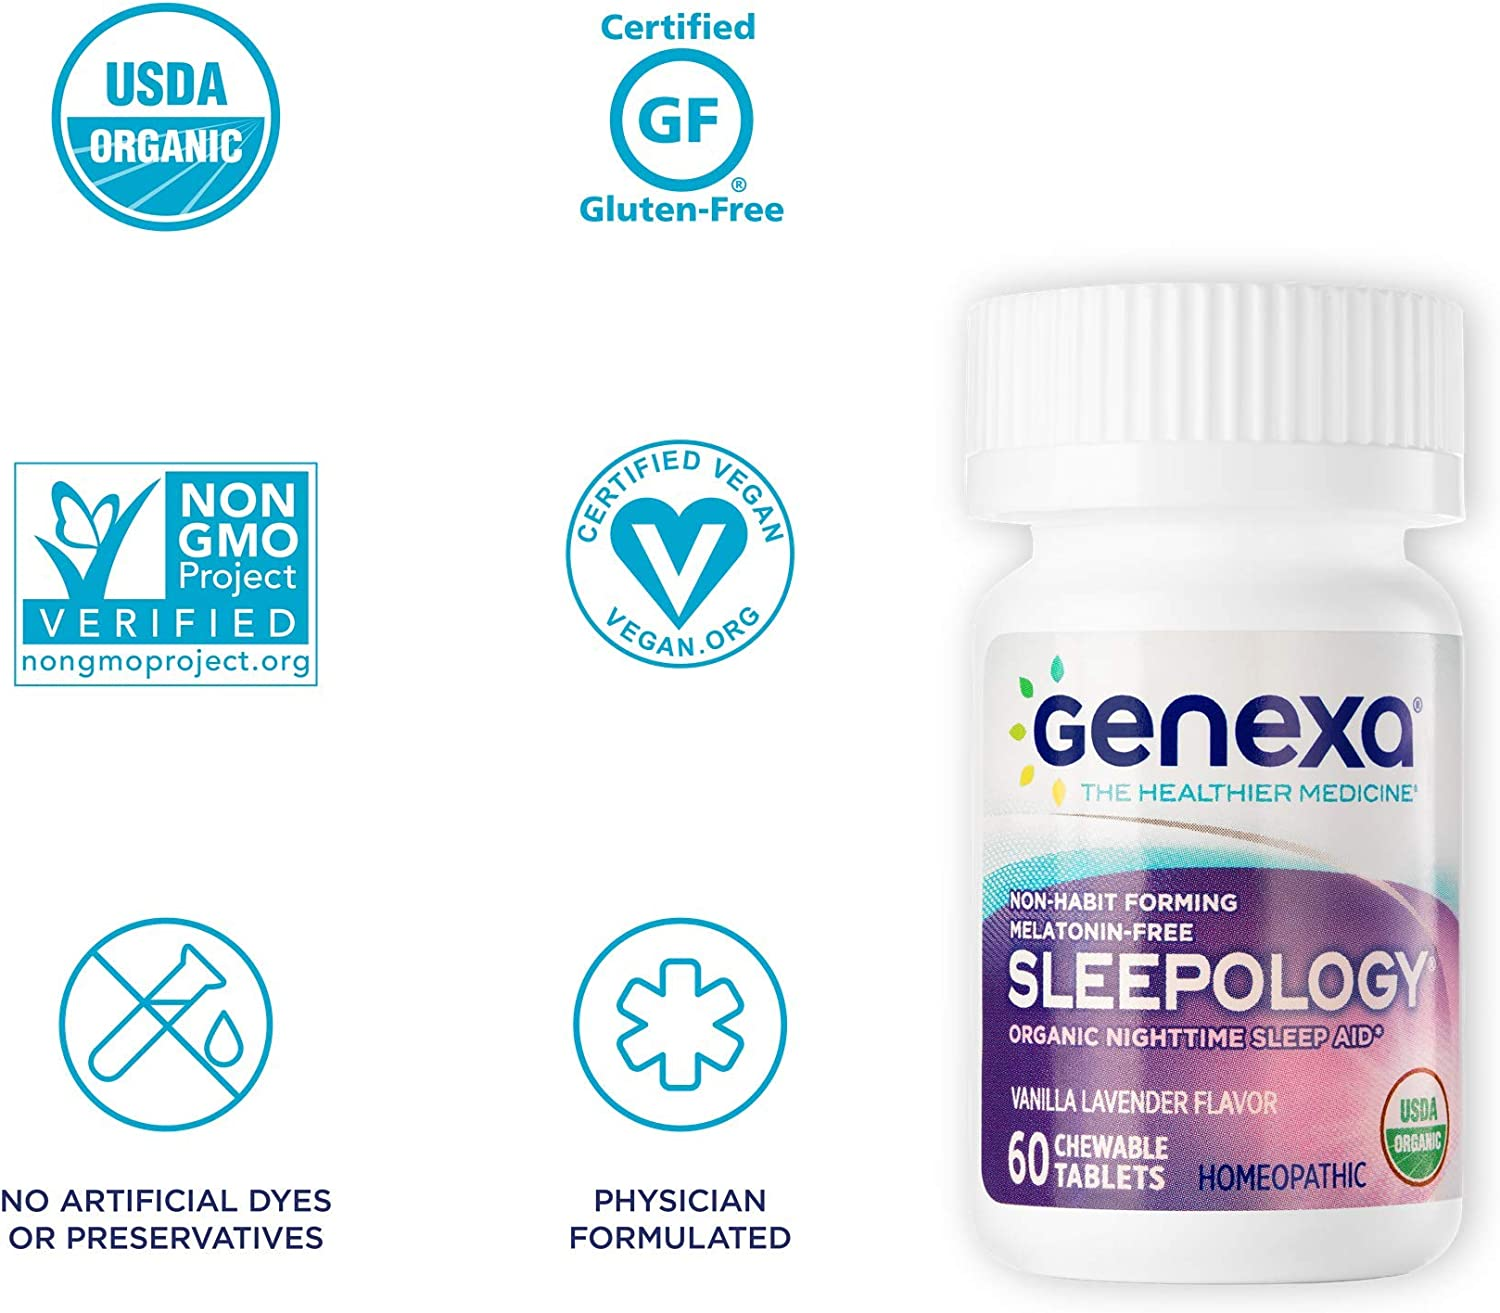 Genexa Sleepology- 180 Tablets | Certified Organic & Non-GMO, Physician Formulated, Homeopathic | Sleep Aid